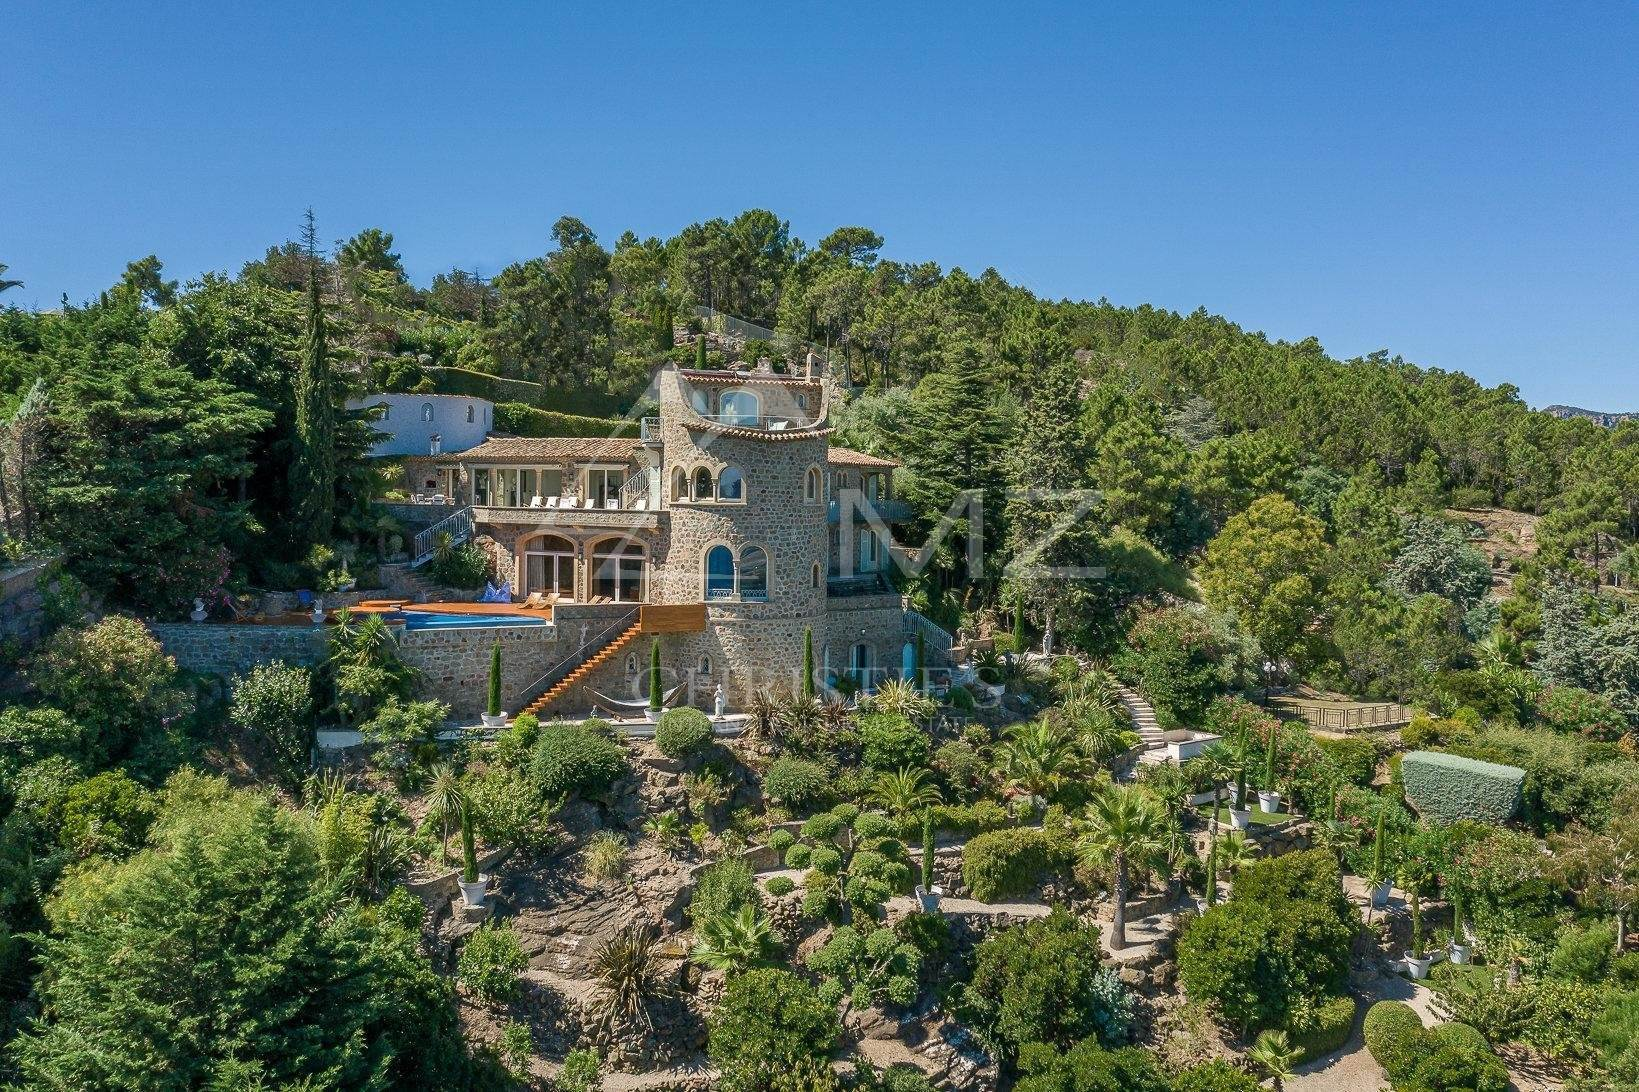 Villa/Townhouse for Sale at Close to Cannes - Panoramic sea views in private domain Theoule sur Mer, Alpes-Maritimes,06590 France